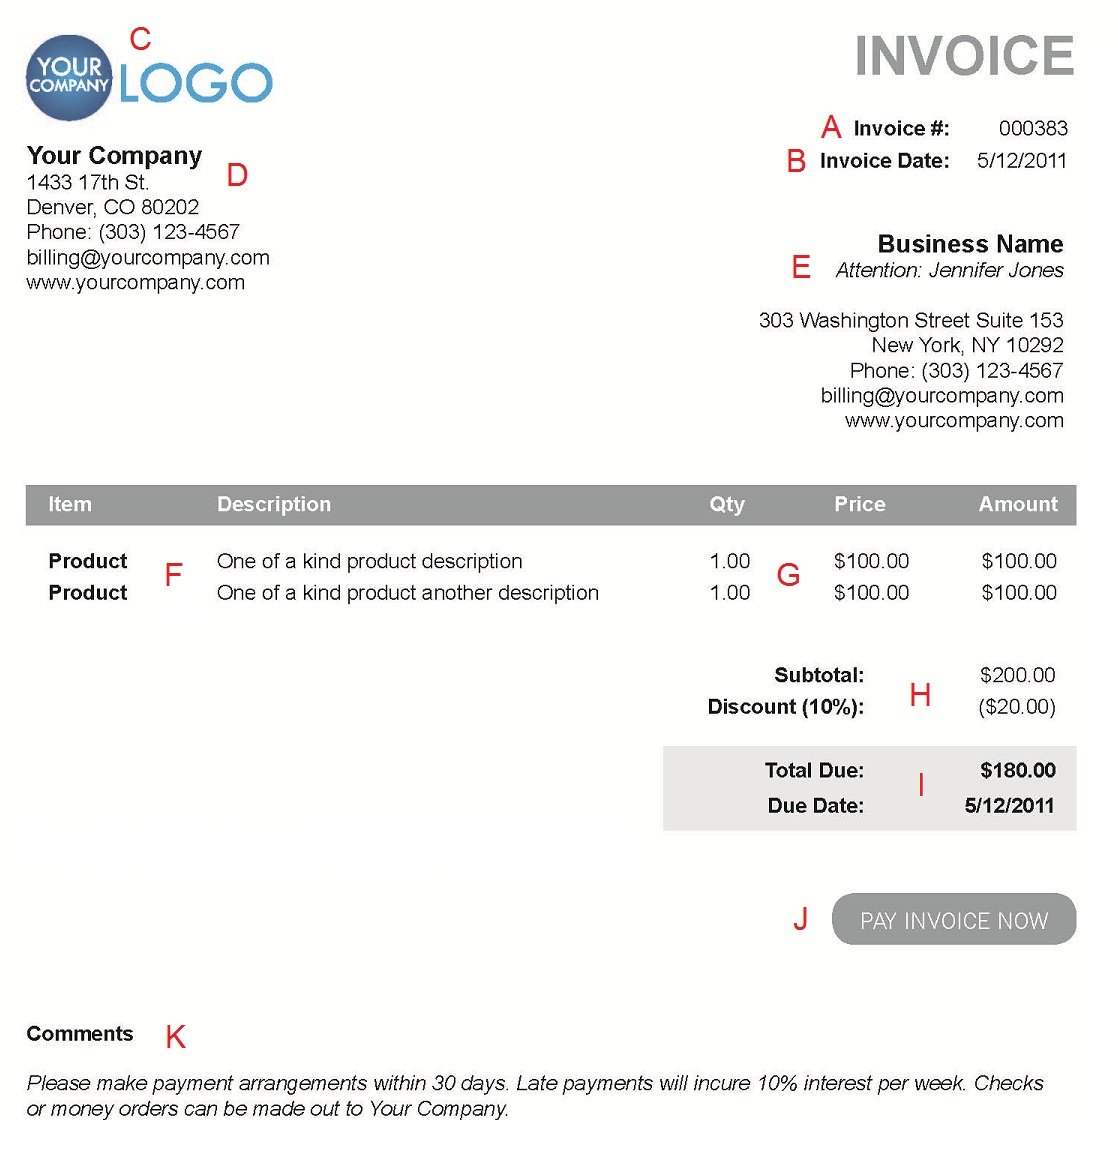 Aaaaeroincus  Fascinating The  Different Sections Of An Electronic Payment Invoice With Magnificent A  With Attractive Invoice Word Document Also Paying Invoices In Addition Musician Invoice Template And Invoice Template Office As Well As Iphone Invoice App Additionally Construction Invoicing Software From Paysimplecom With Aaaaeroincus  Magnificent The  Different Sections Of An Electronic Payment Invoice With Attractive A  And Fascinating Invoice Word Document Also Paying Invoices In Addition Musician Invoice Template From Paysimplecom